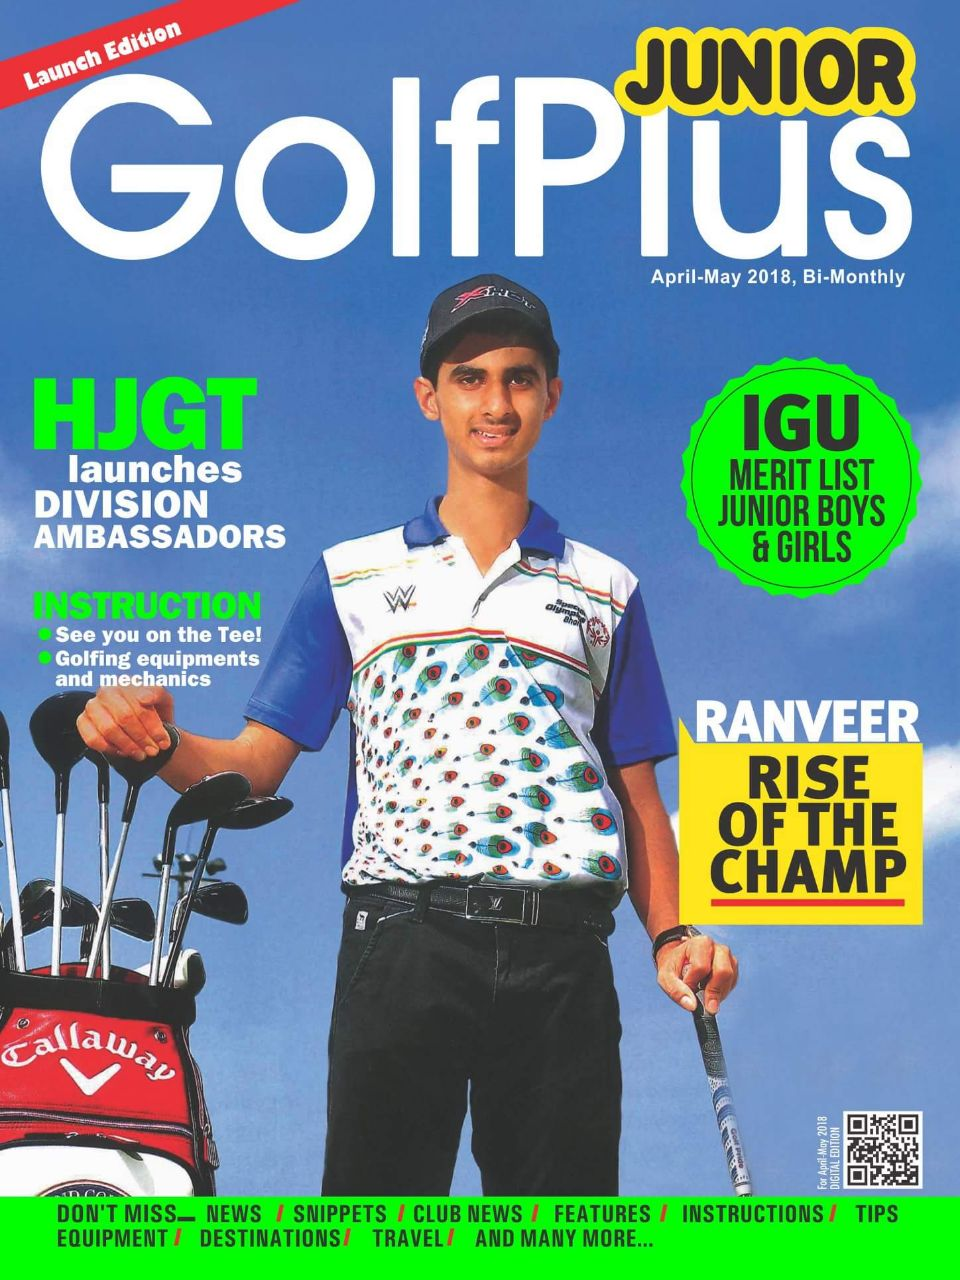 Golf plus junior 1st edition launched with featuring ranveer saini golf plus junior 1st edition launched with featuring ranveer saini on the cover page altavistaventures